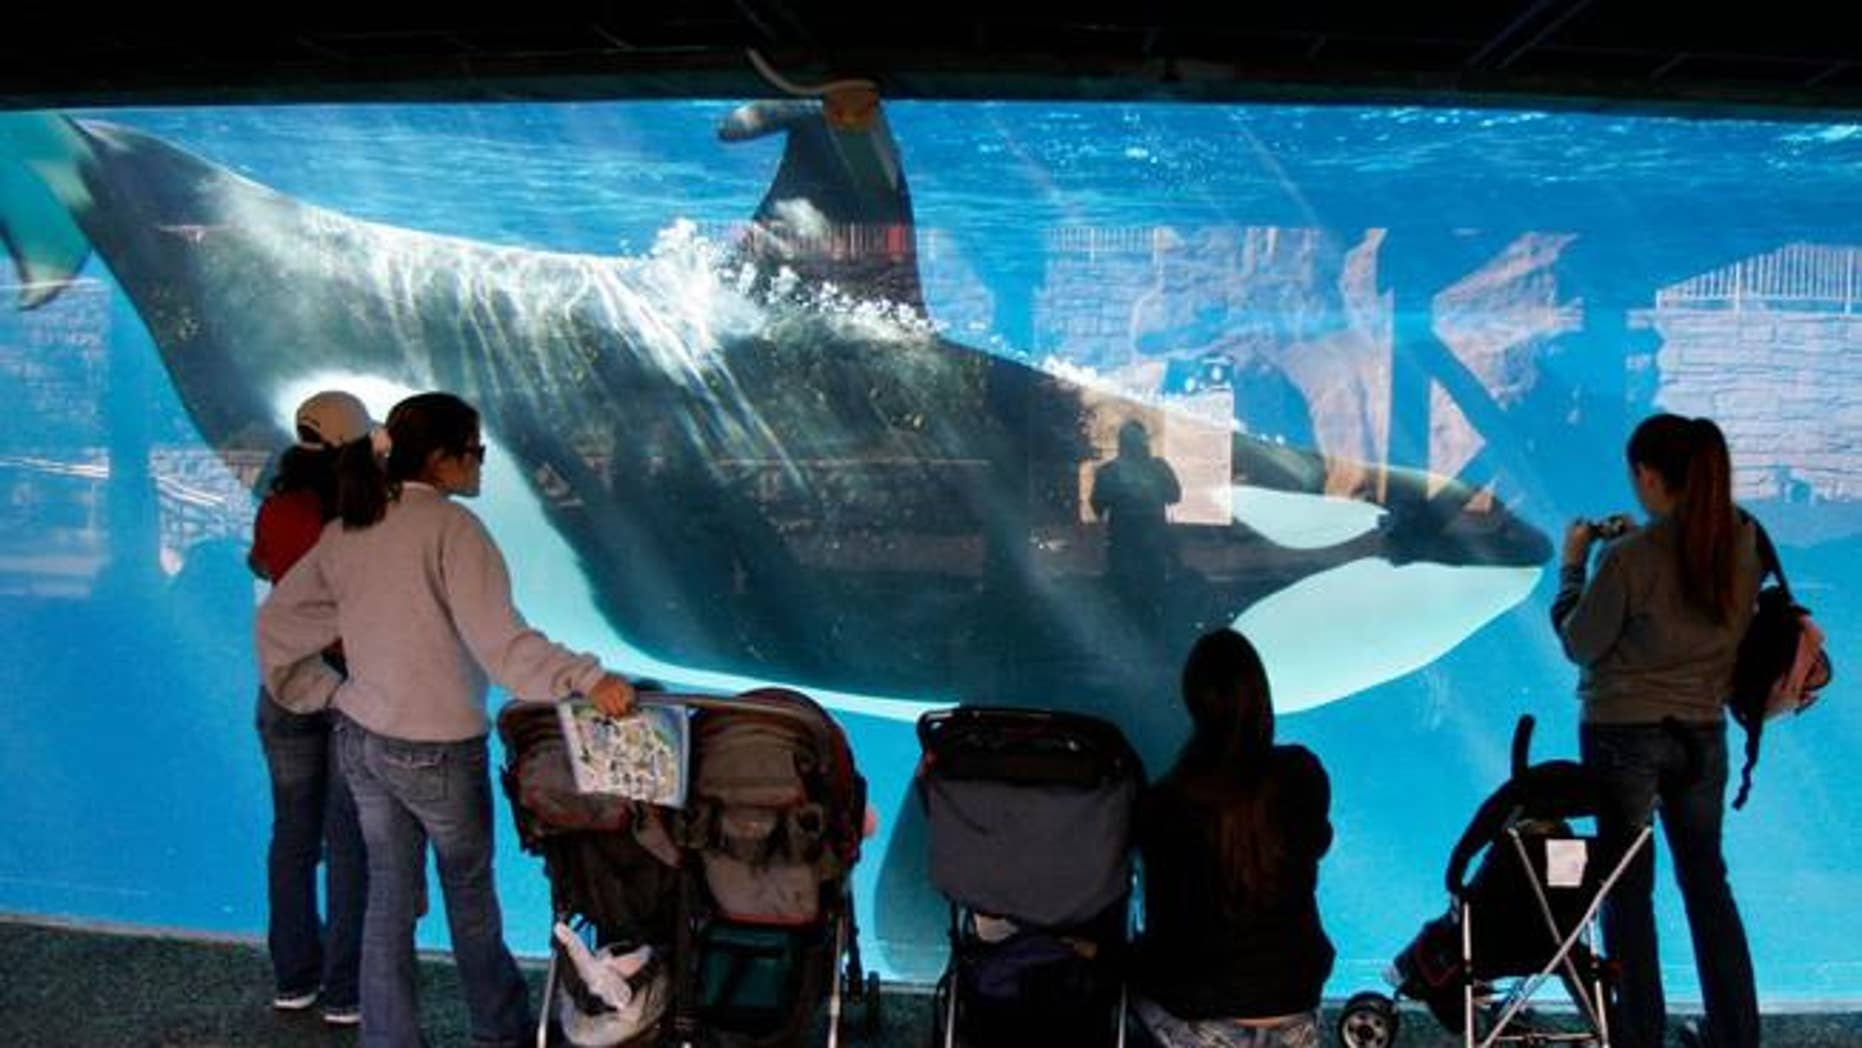 In this file photo from Nov. 2016, park guests watch through glass as a killer whale swims by in a display tank at SeaWorld in San Diego.